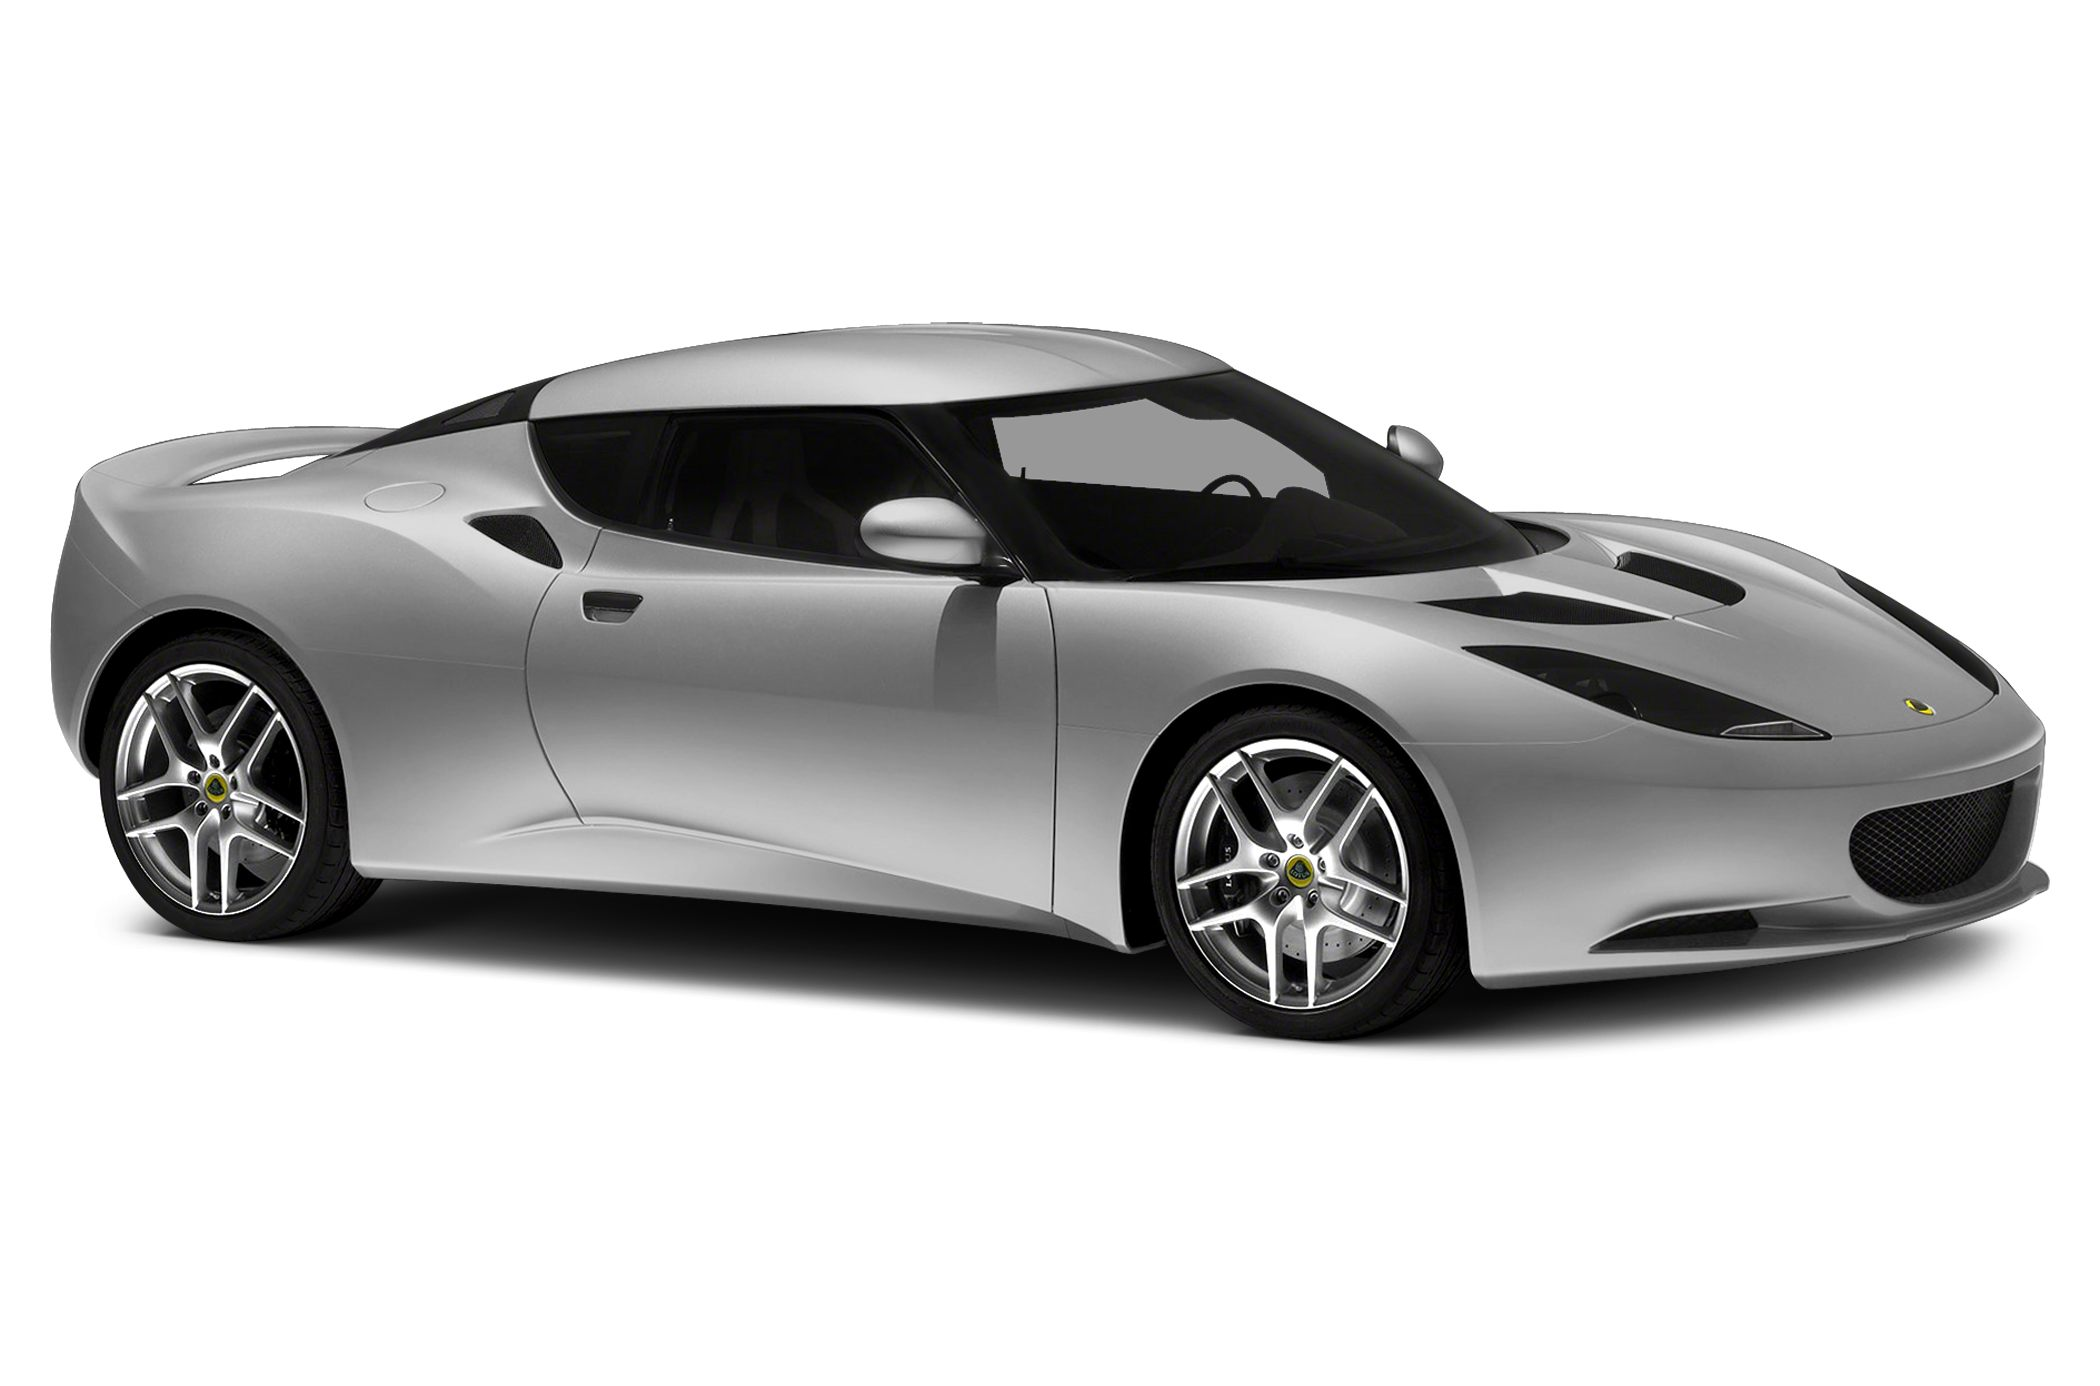 2013 Lotus Evora